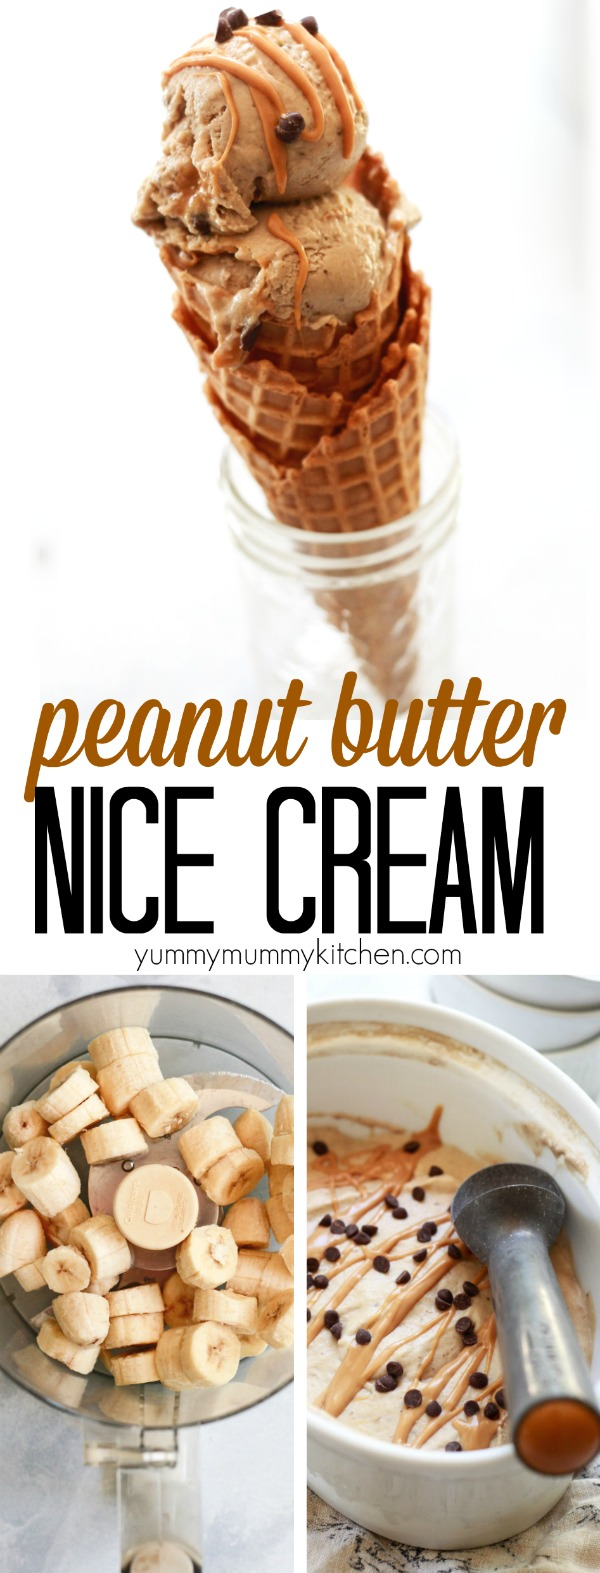 Banana nice cream flavored with peanut butter and chocolate chips is an easy, healthier, dairy-free vegan ice cream dessert recipe made with real food ingredients.Banana nice cream is a great recipe for kids to help make.